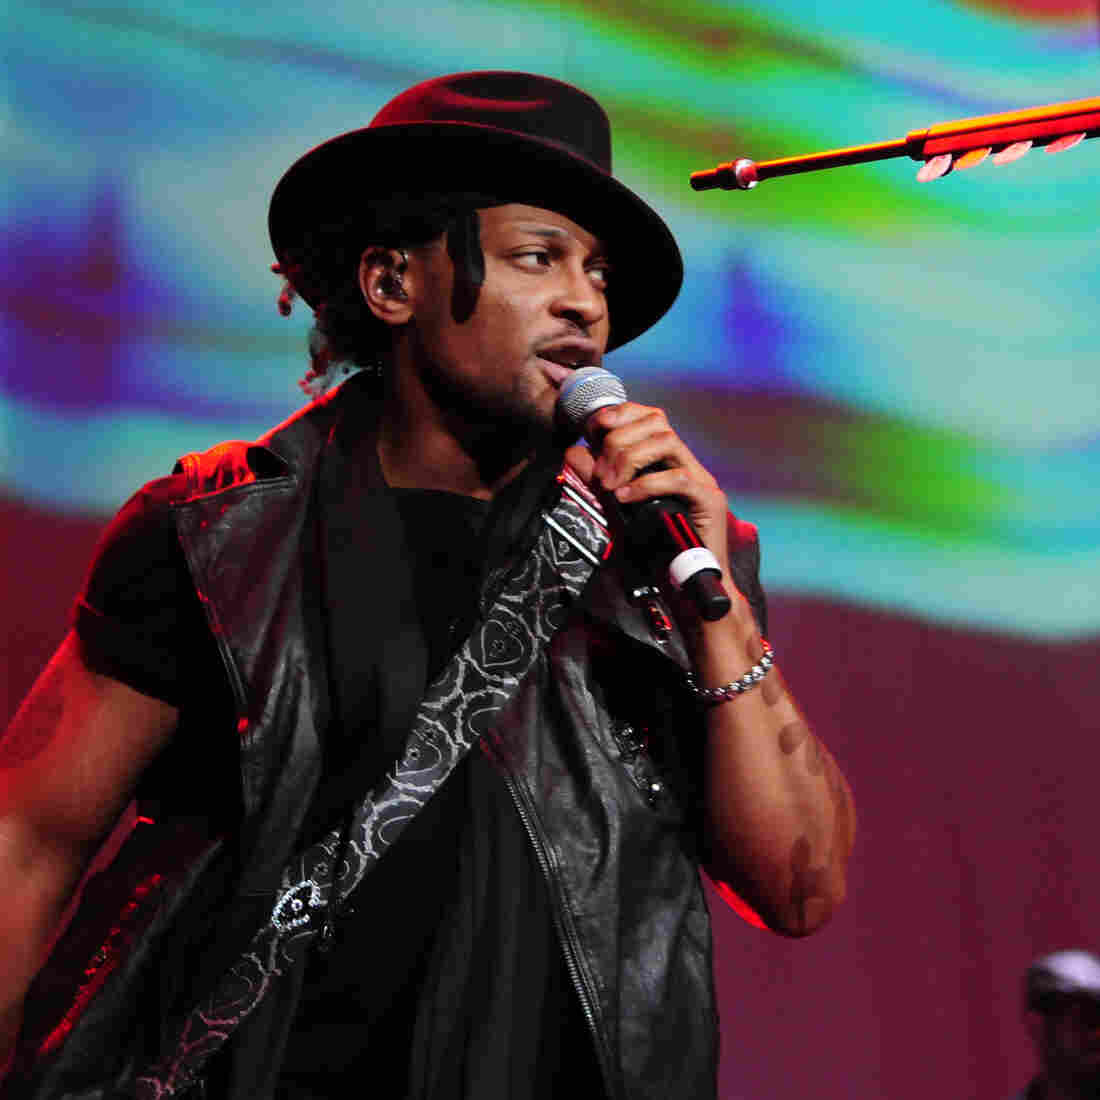 D'Angelo has just released his first album in 15 years, Black Messiah.